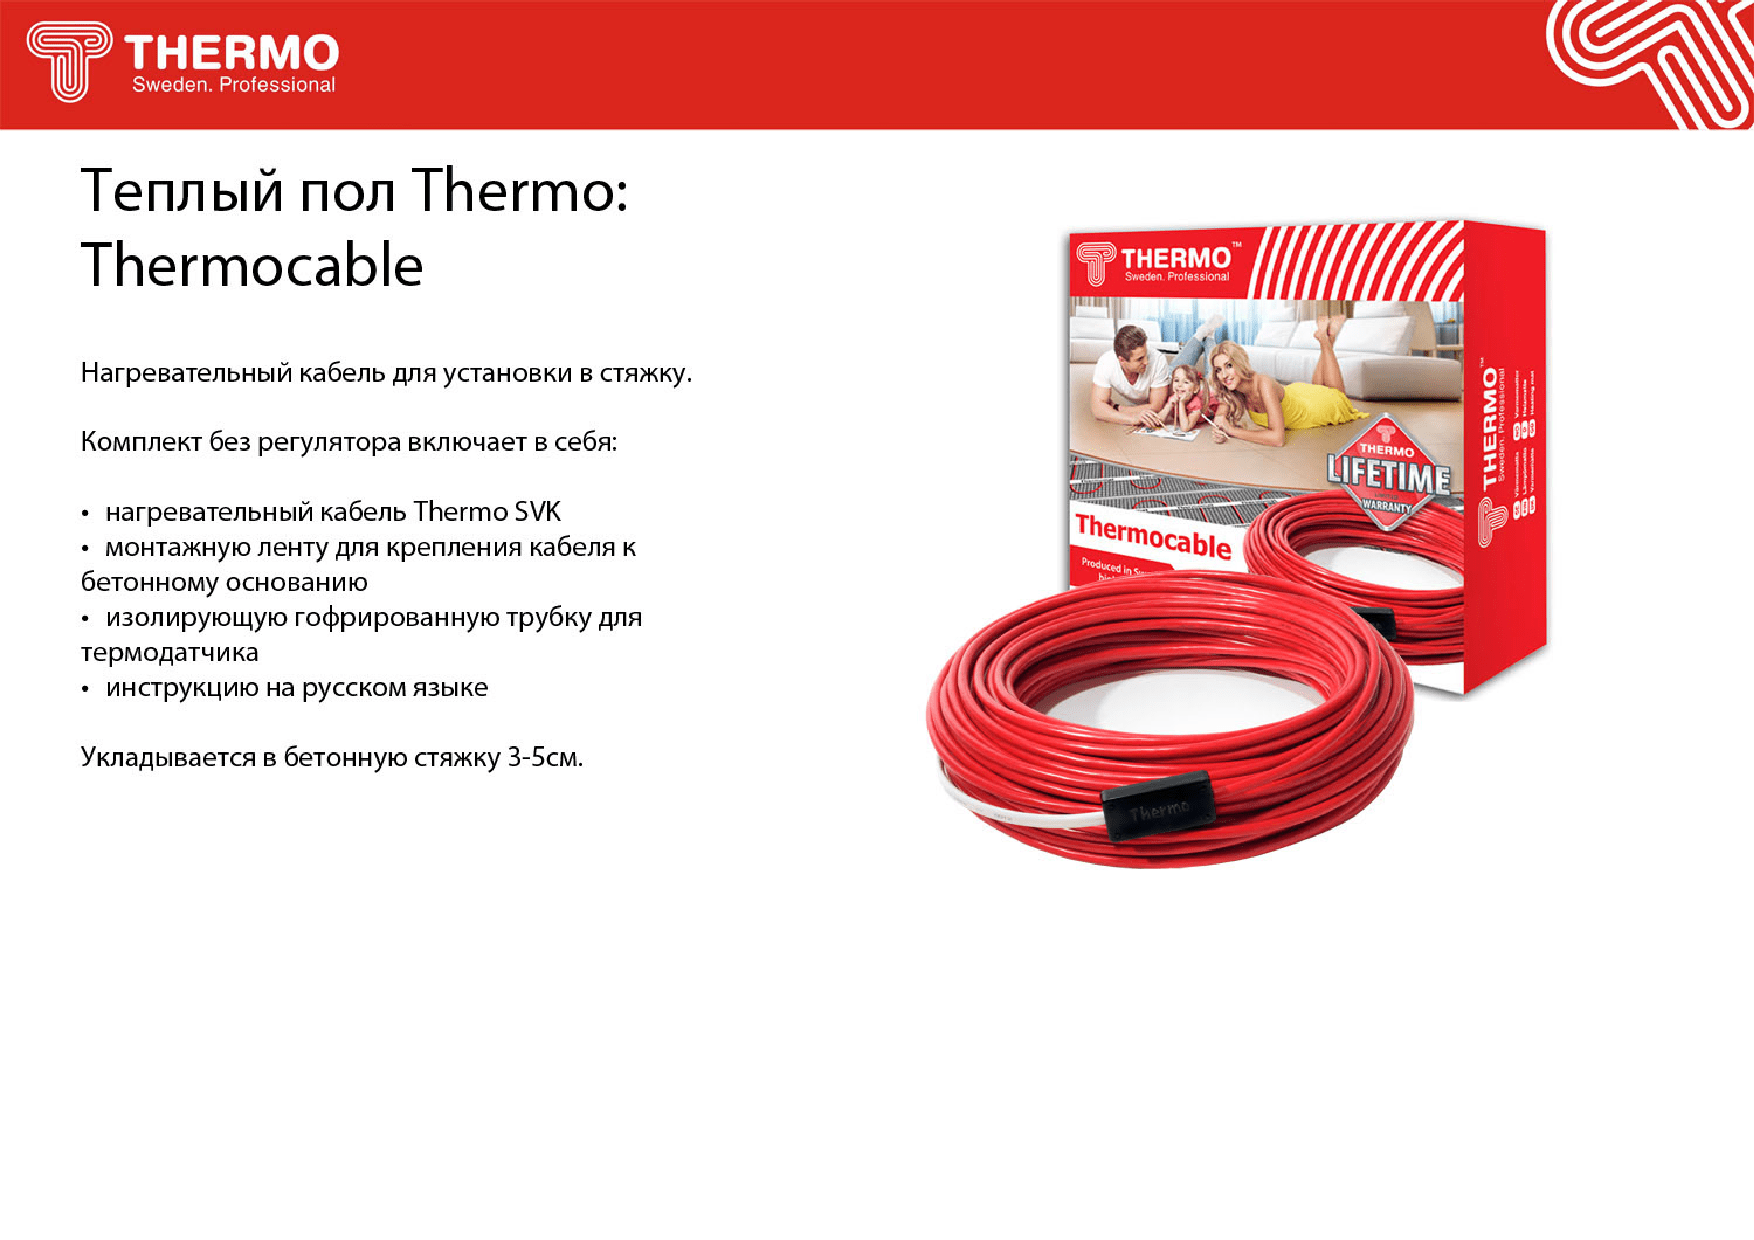 Teplyiy-pol-Thermo-Thermocable